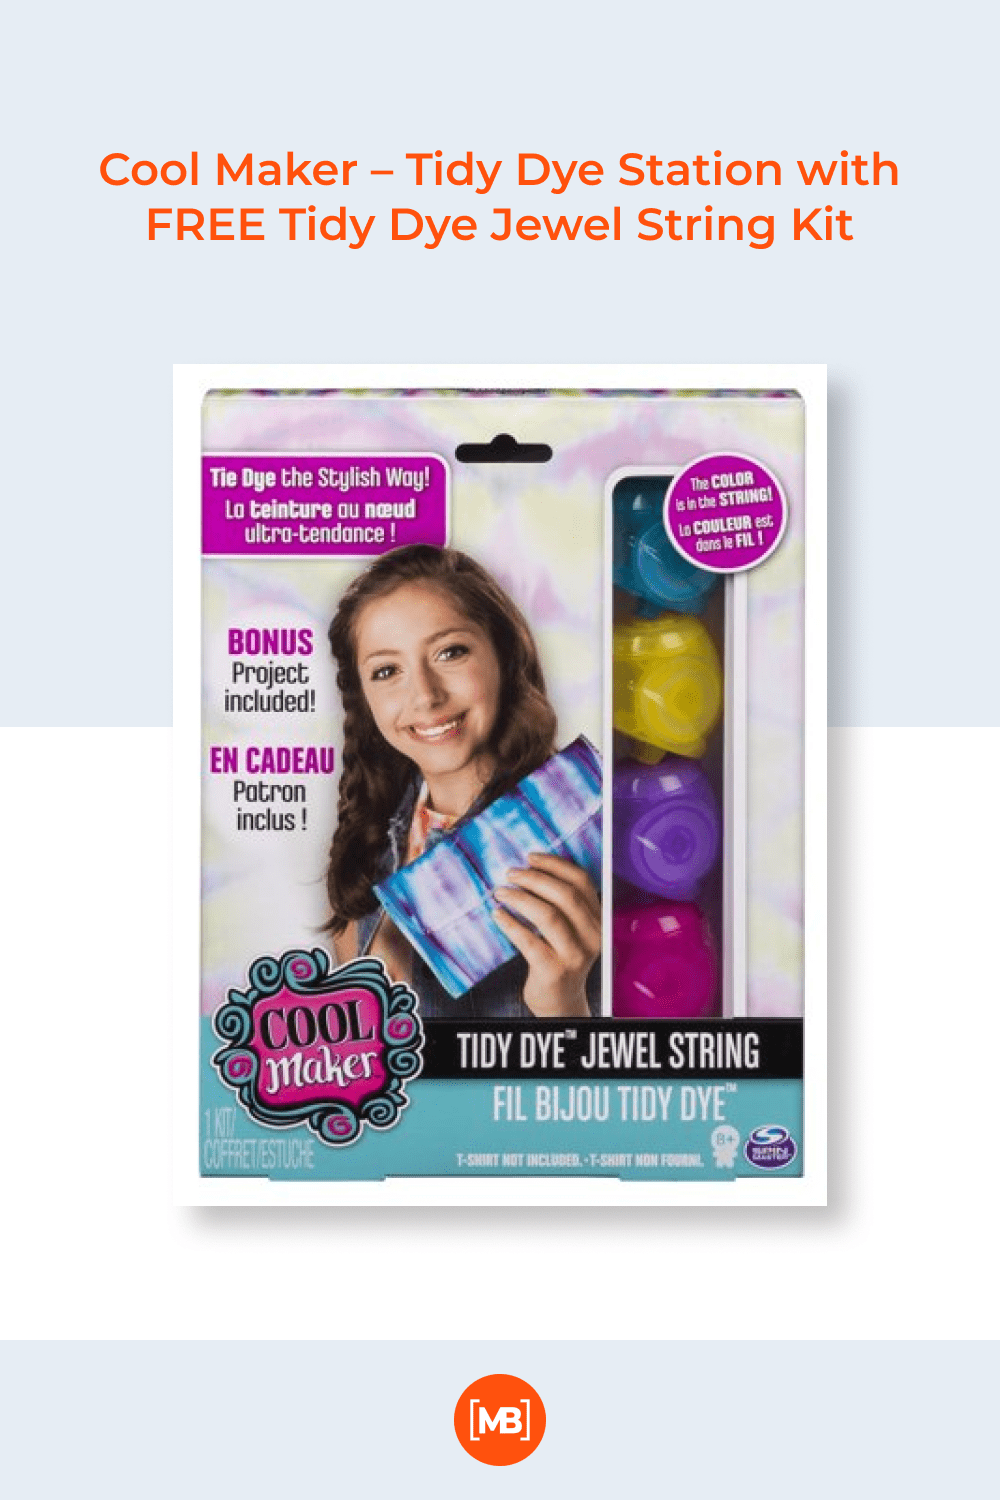 Create your own vibrant fashions with the Tidy Dye Jewel String kit.